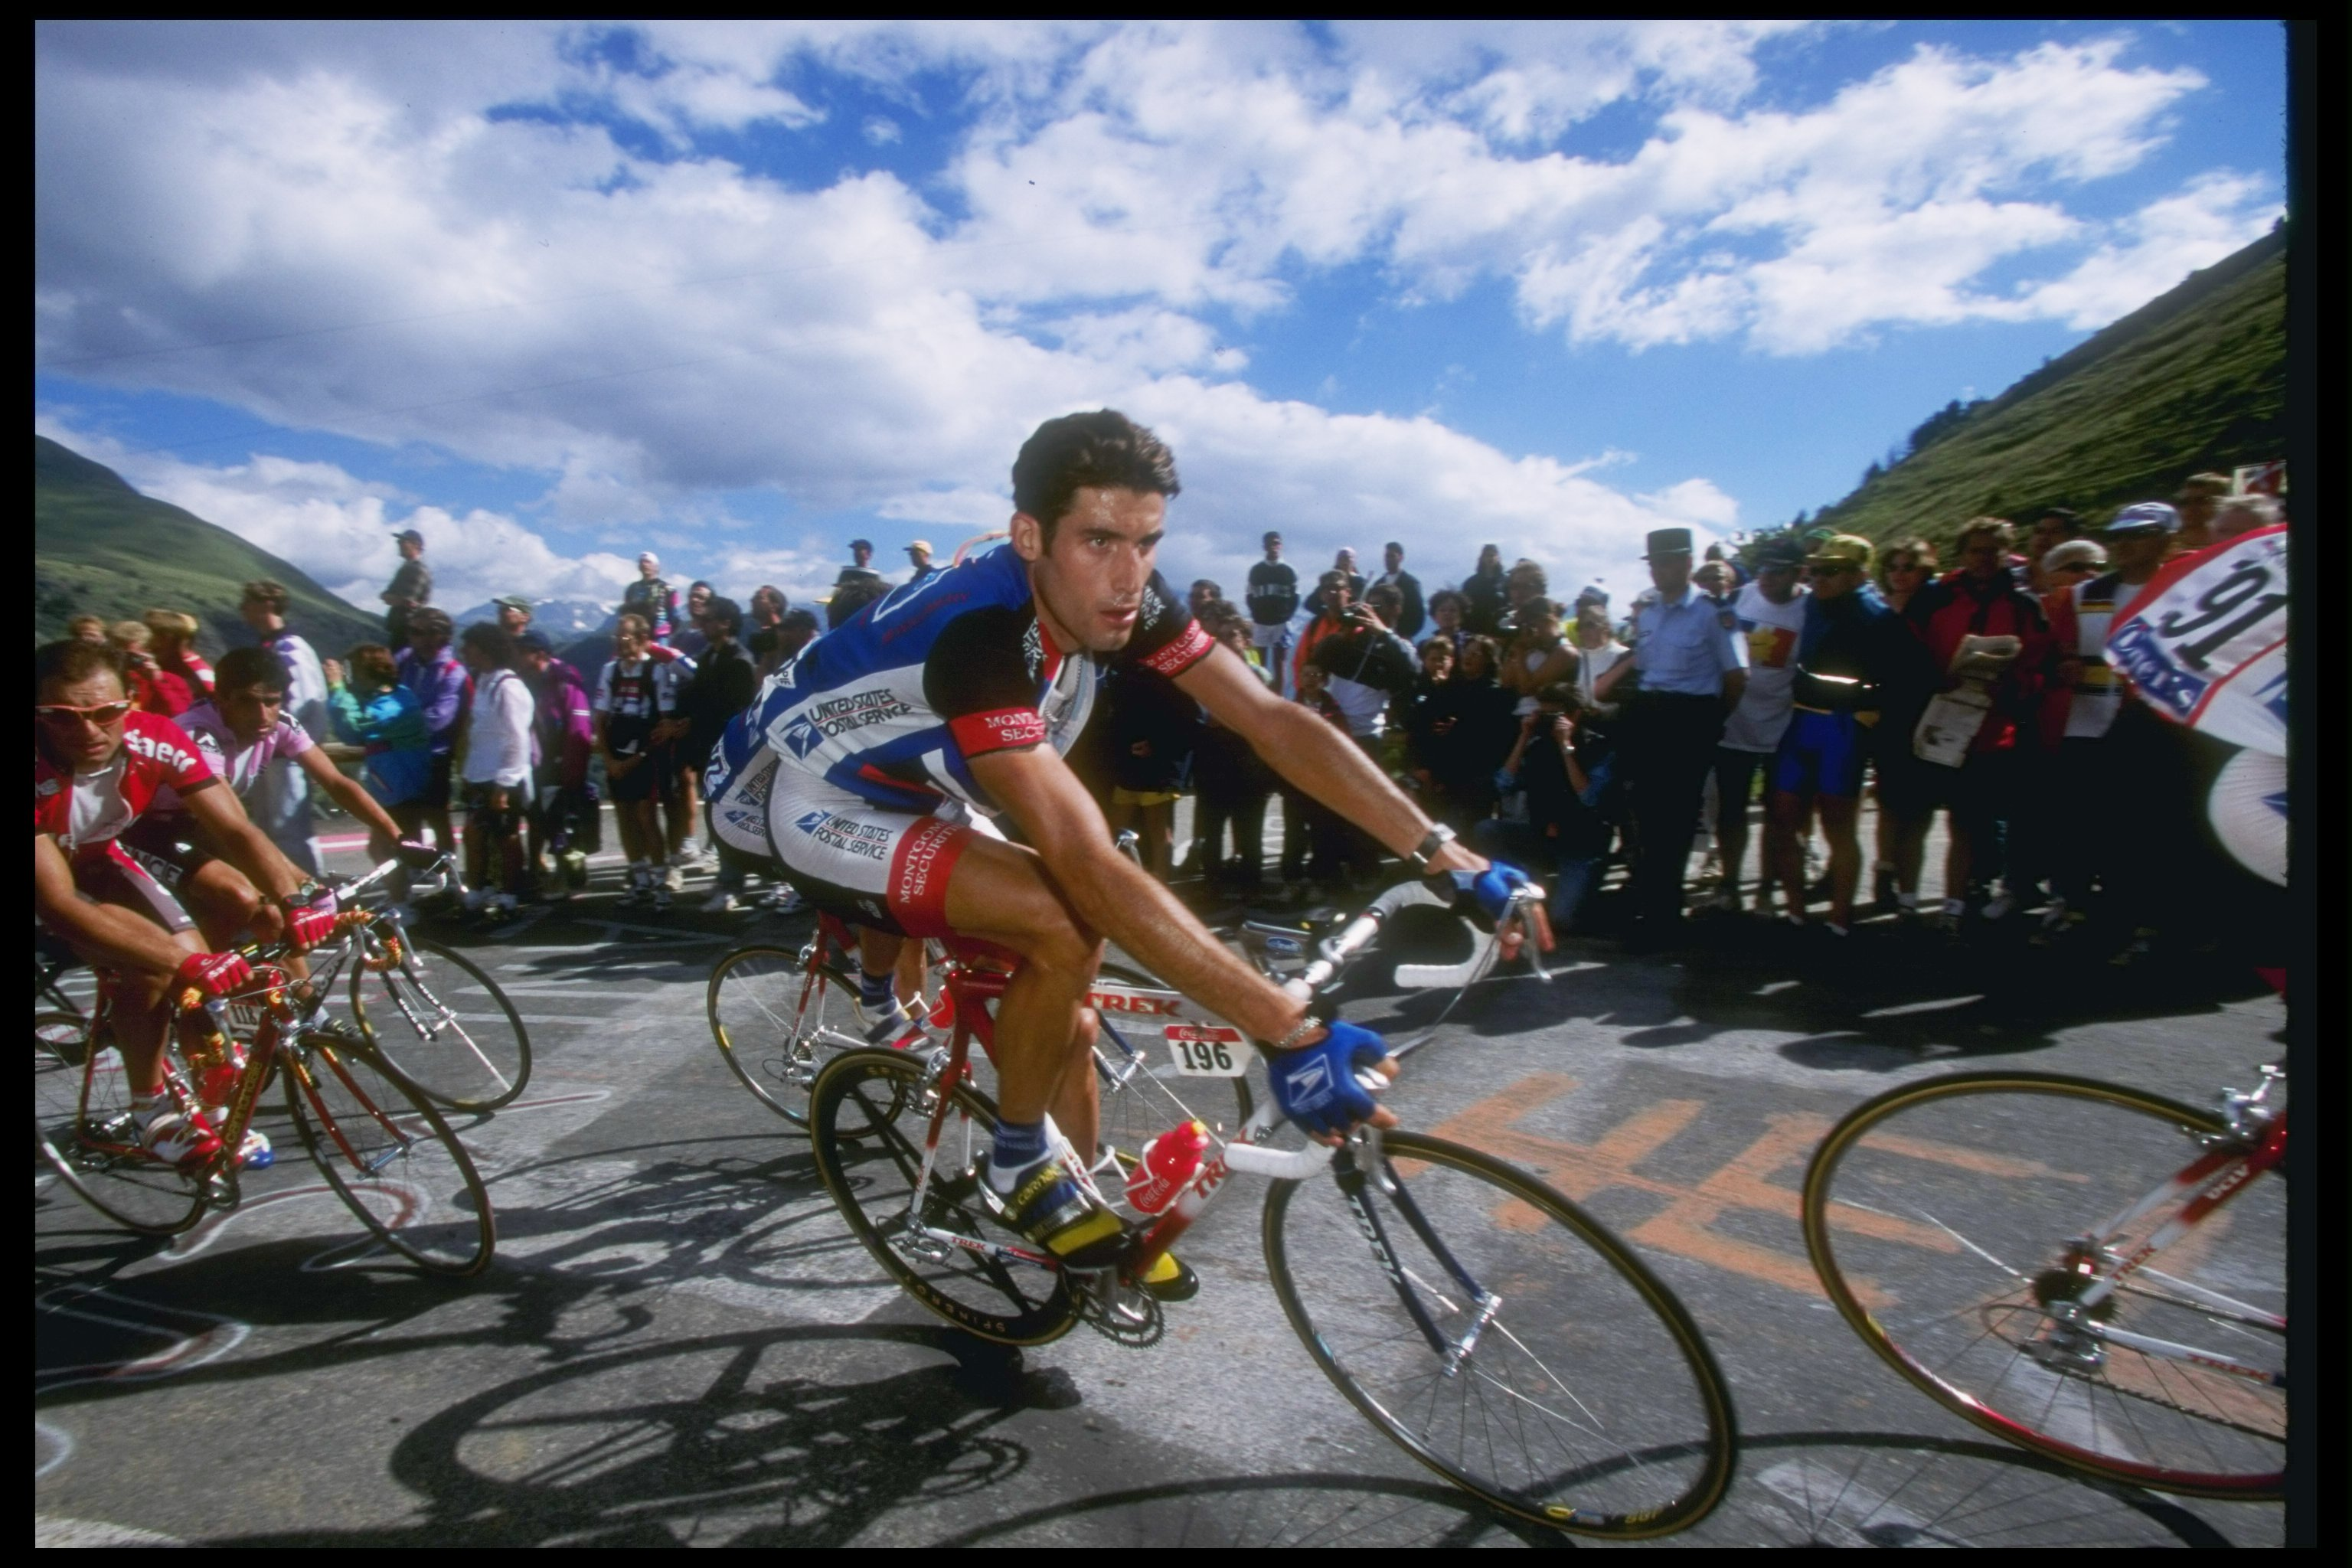 American George Hincapie performs during the 13 stage of the Tour de France in July 1997.